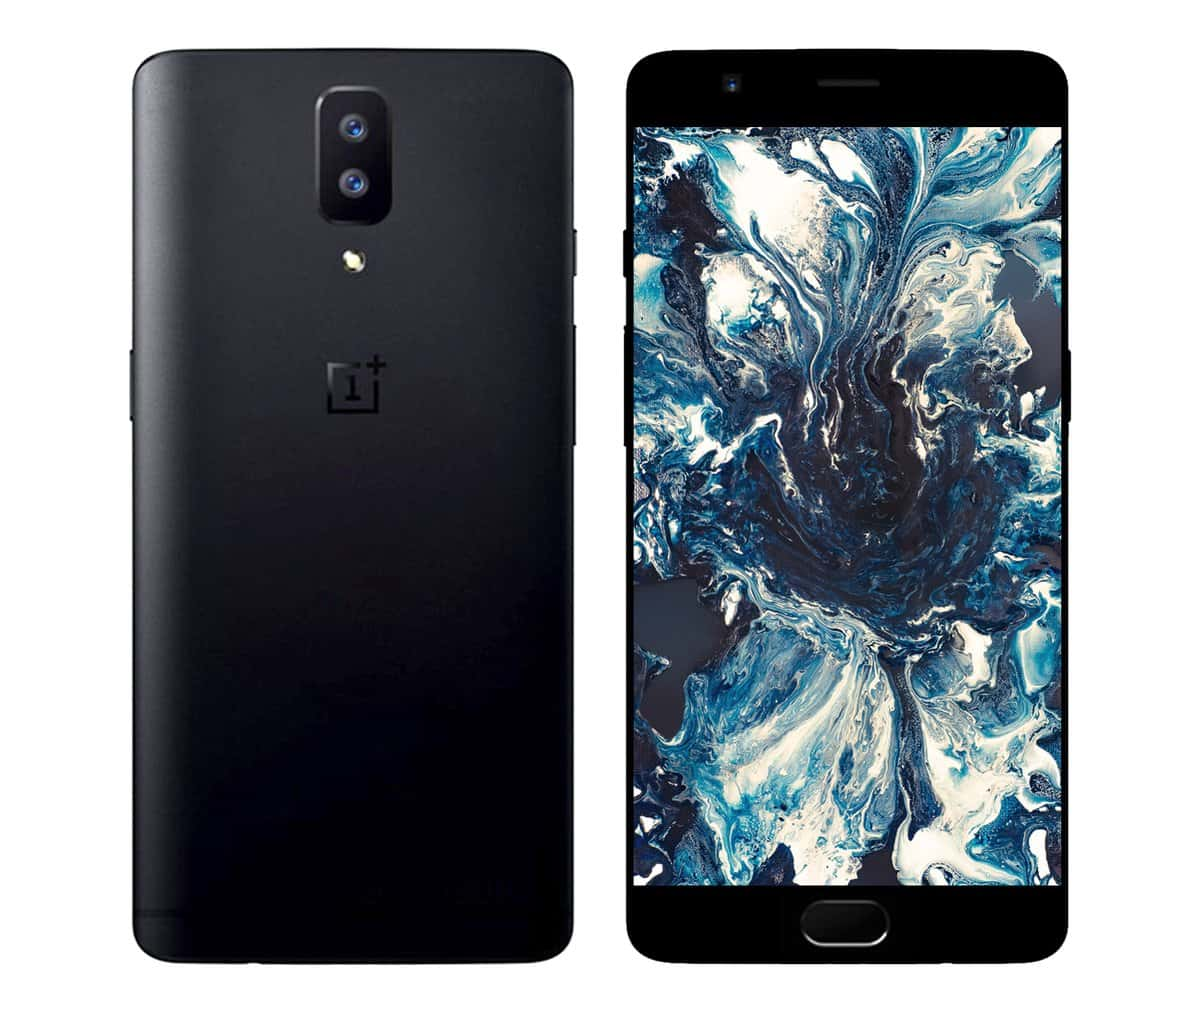 oneplus 5 design fiche technique